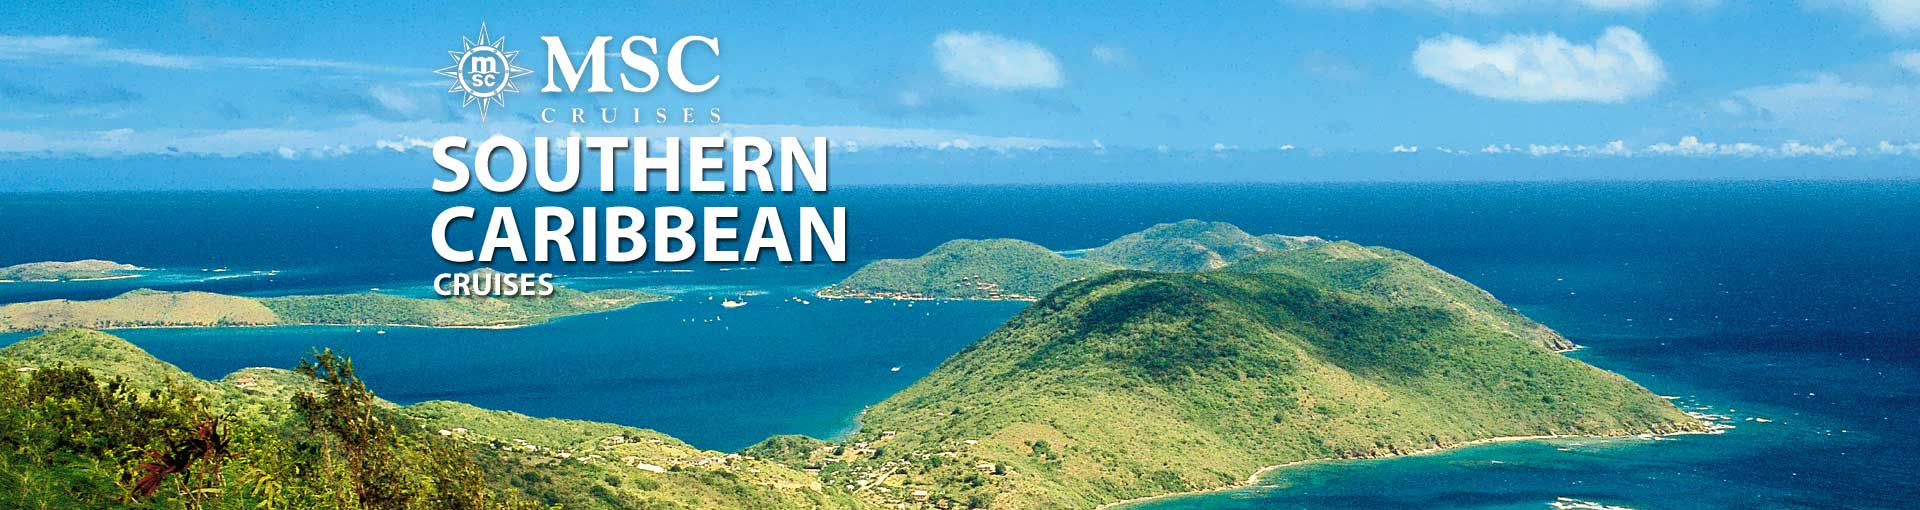 msc southern caribbean cruises 2018 and 2019 southern